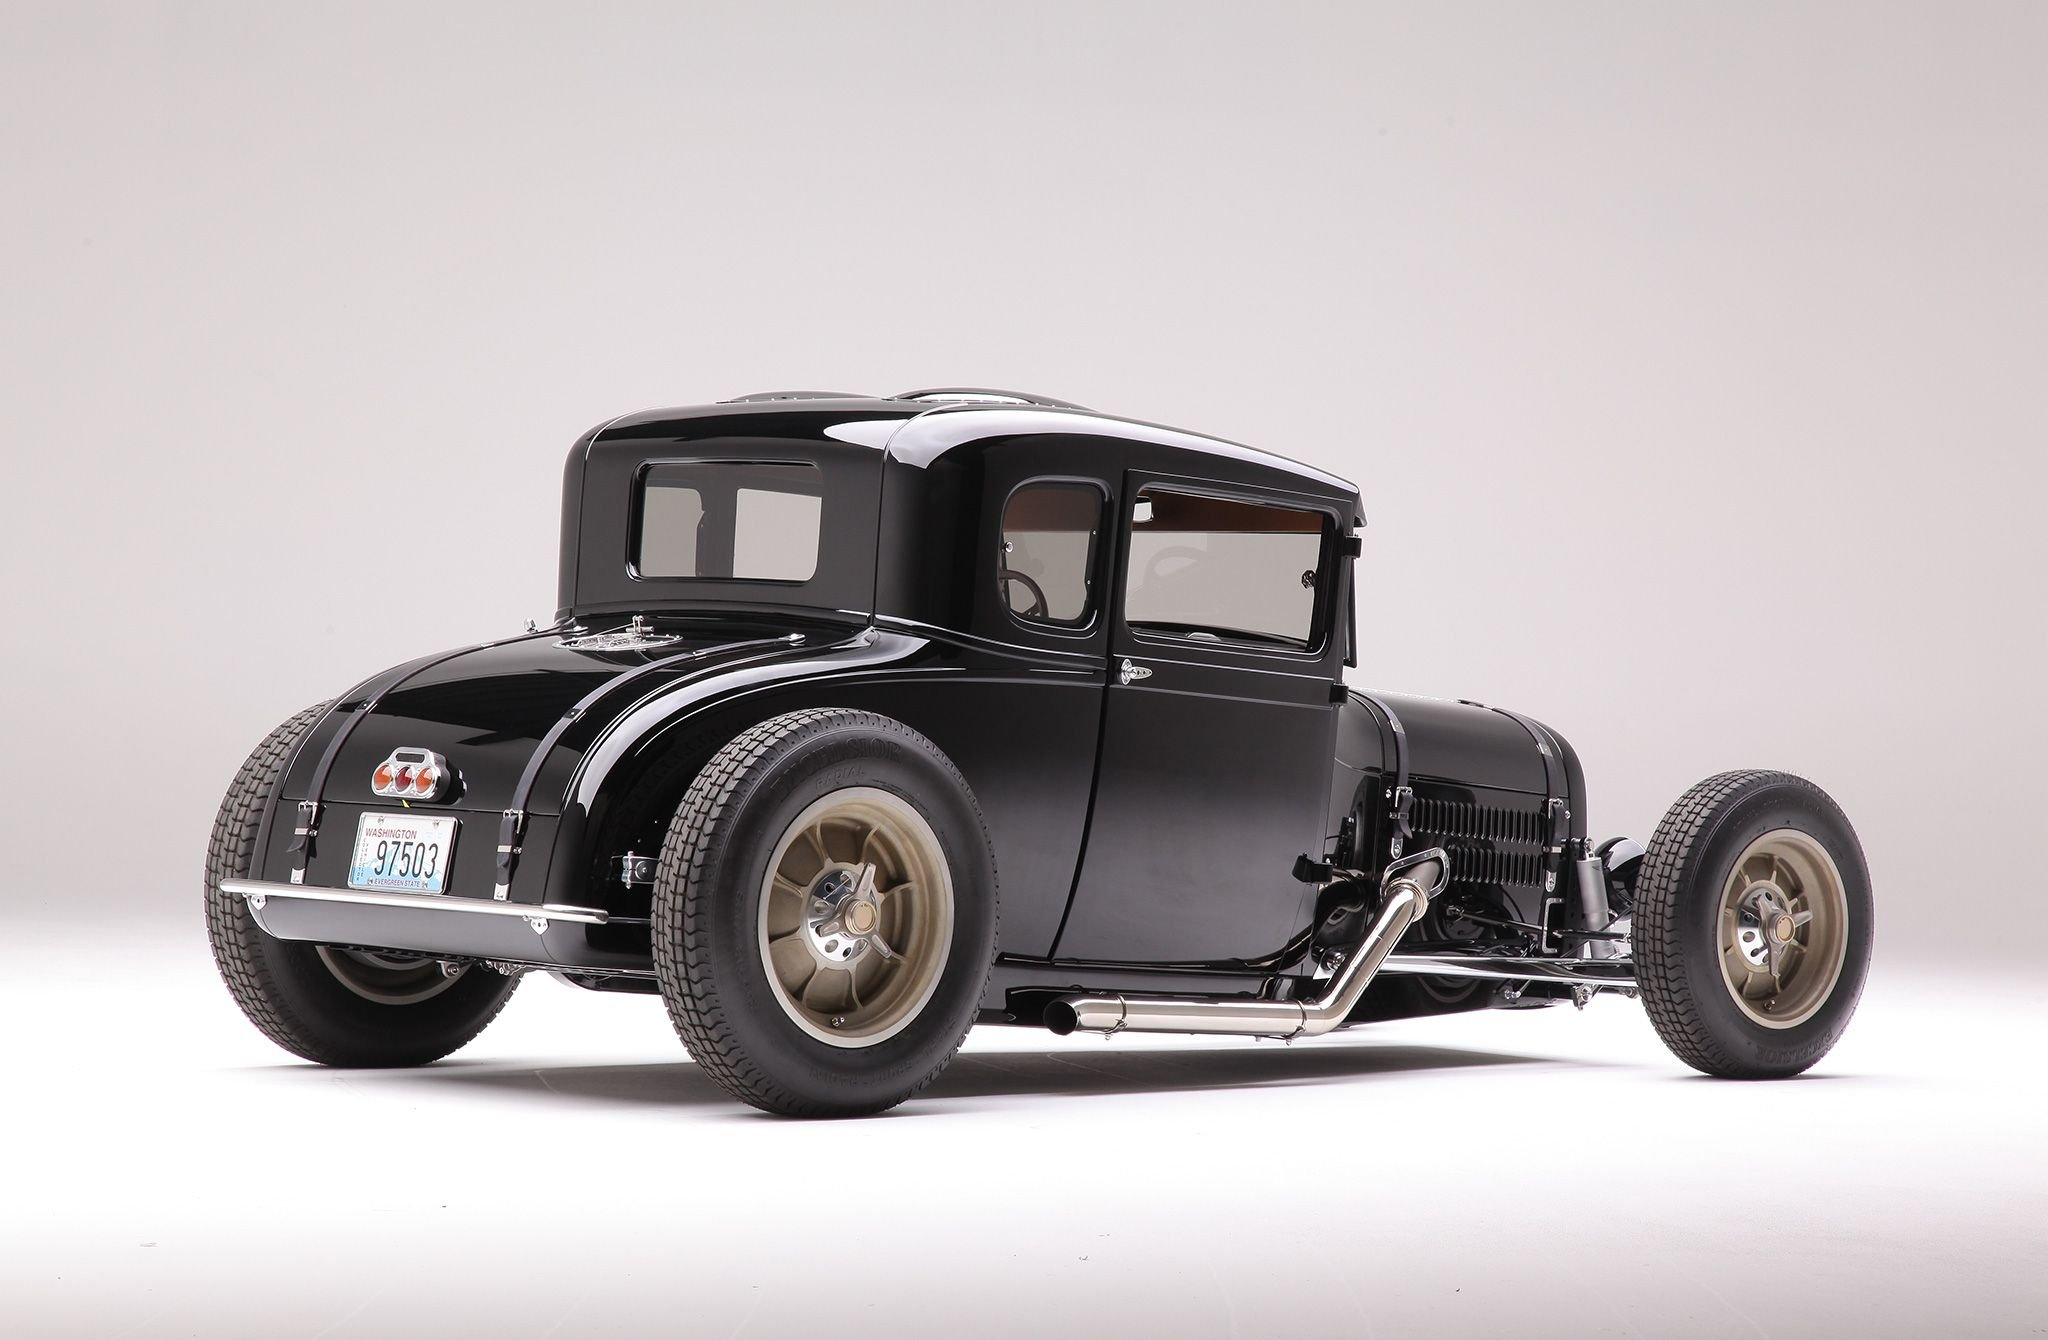 1929 Ford Model A Coupe-04 wallpaper